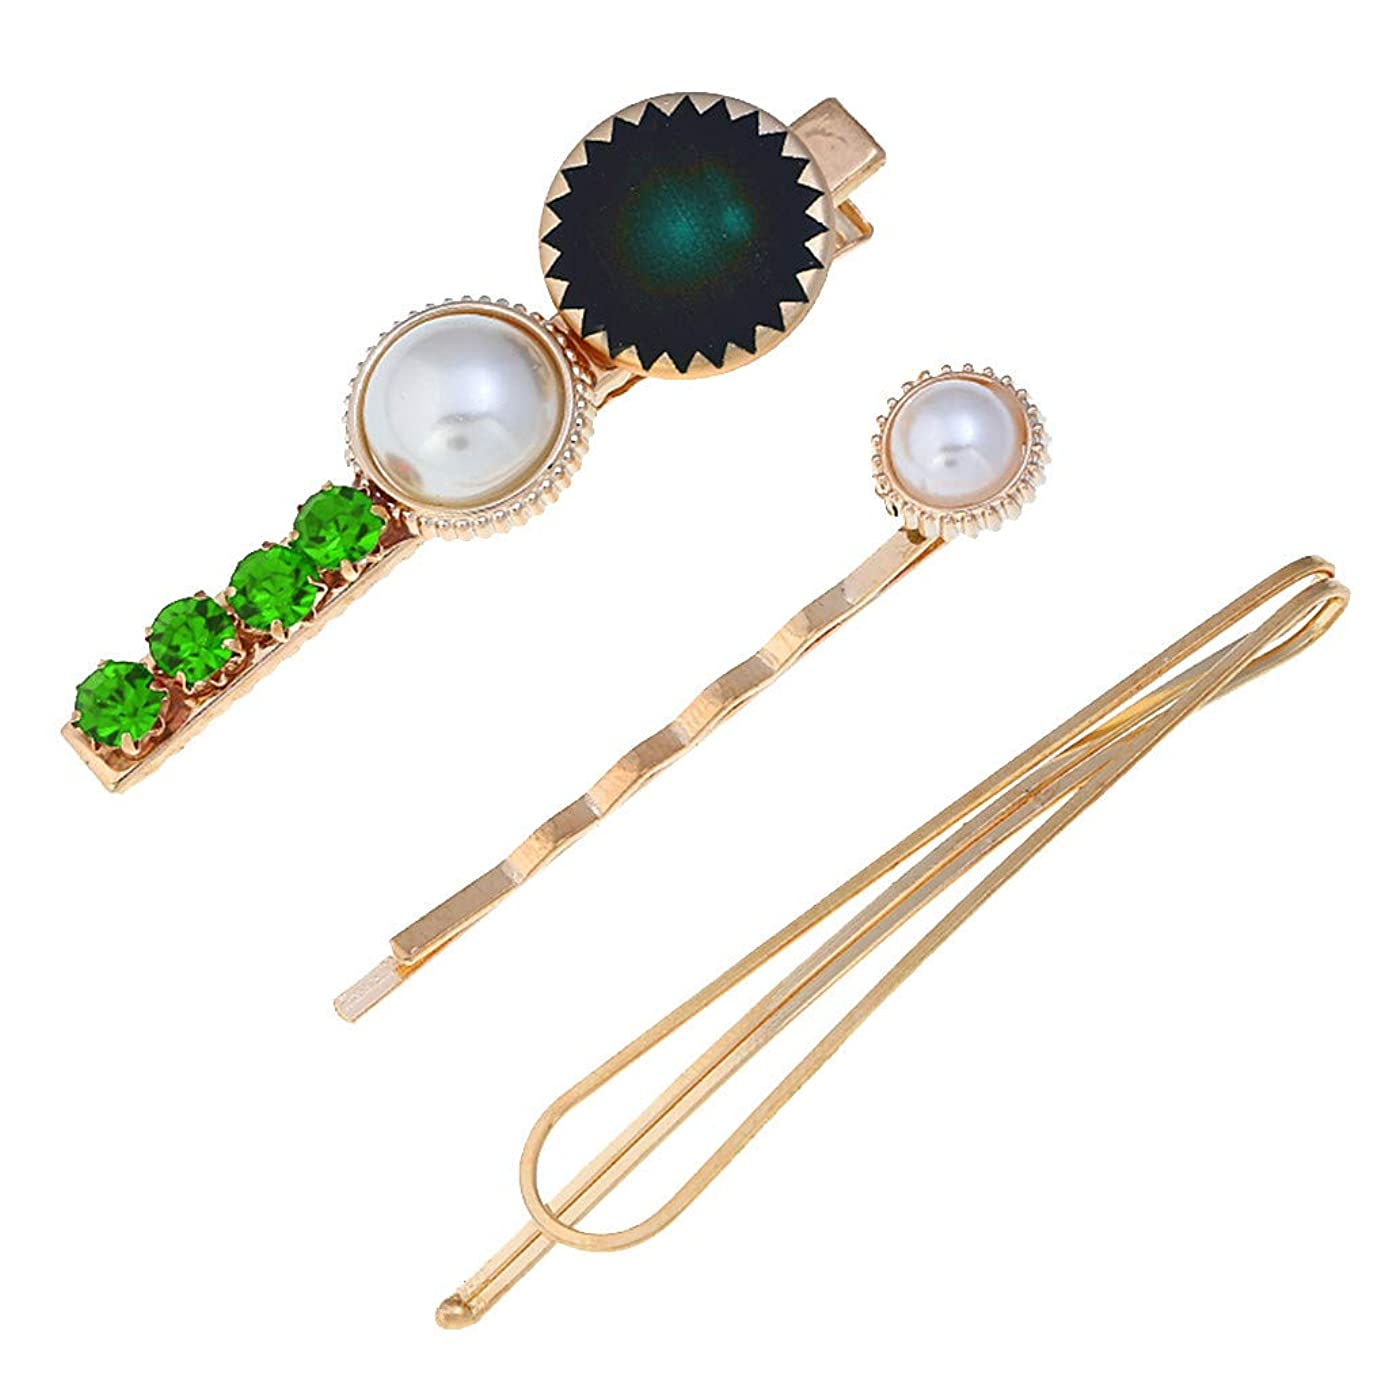 Cathy Clara Women's Fashion Hair Clip Trendy Sweet Romantic Pearl Button Sen Retro Multicolor Hairpin Girl Jewelry